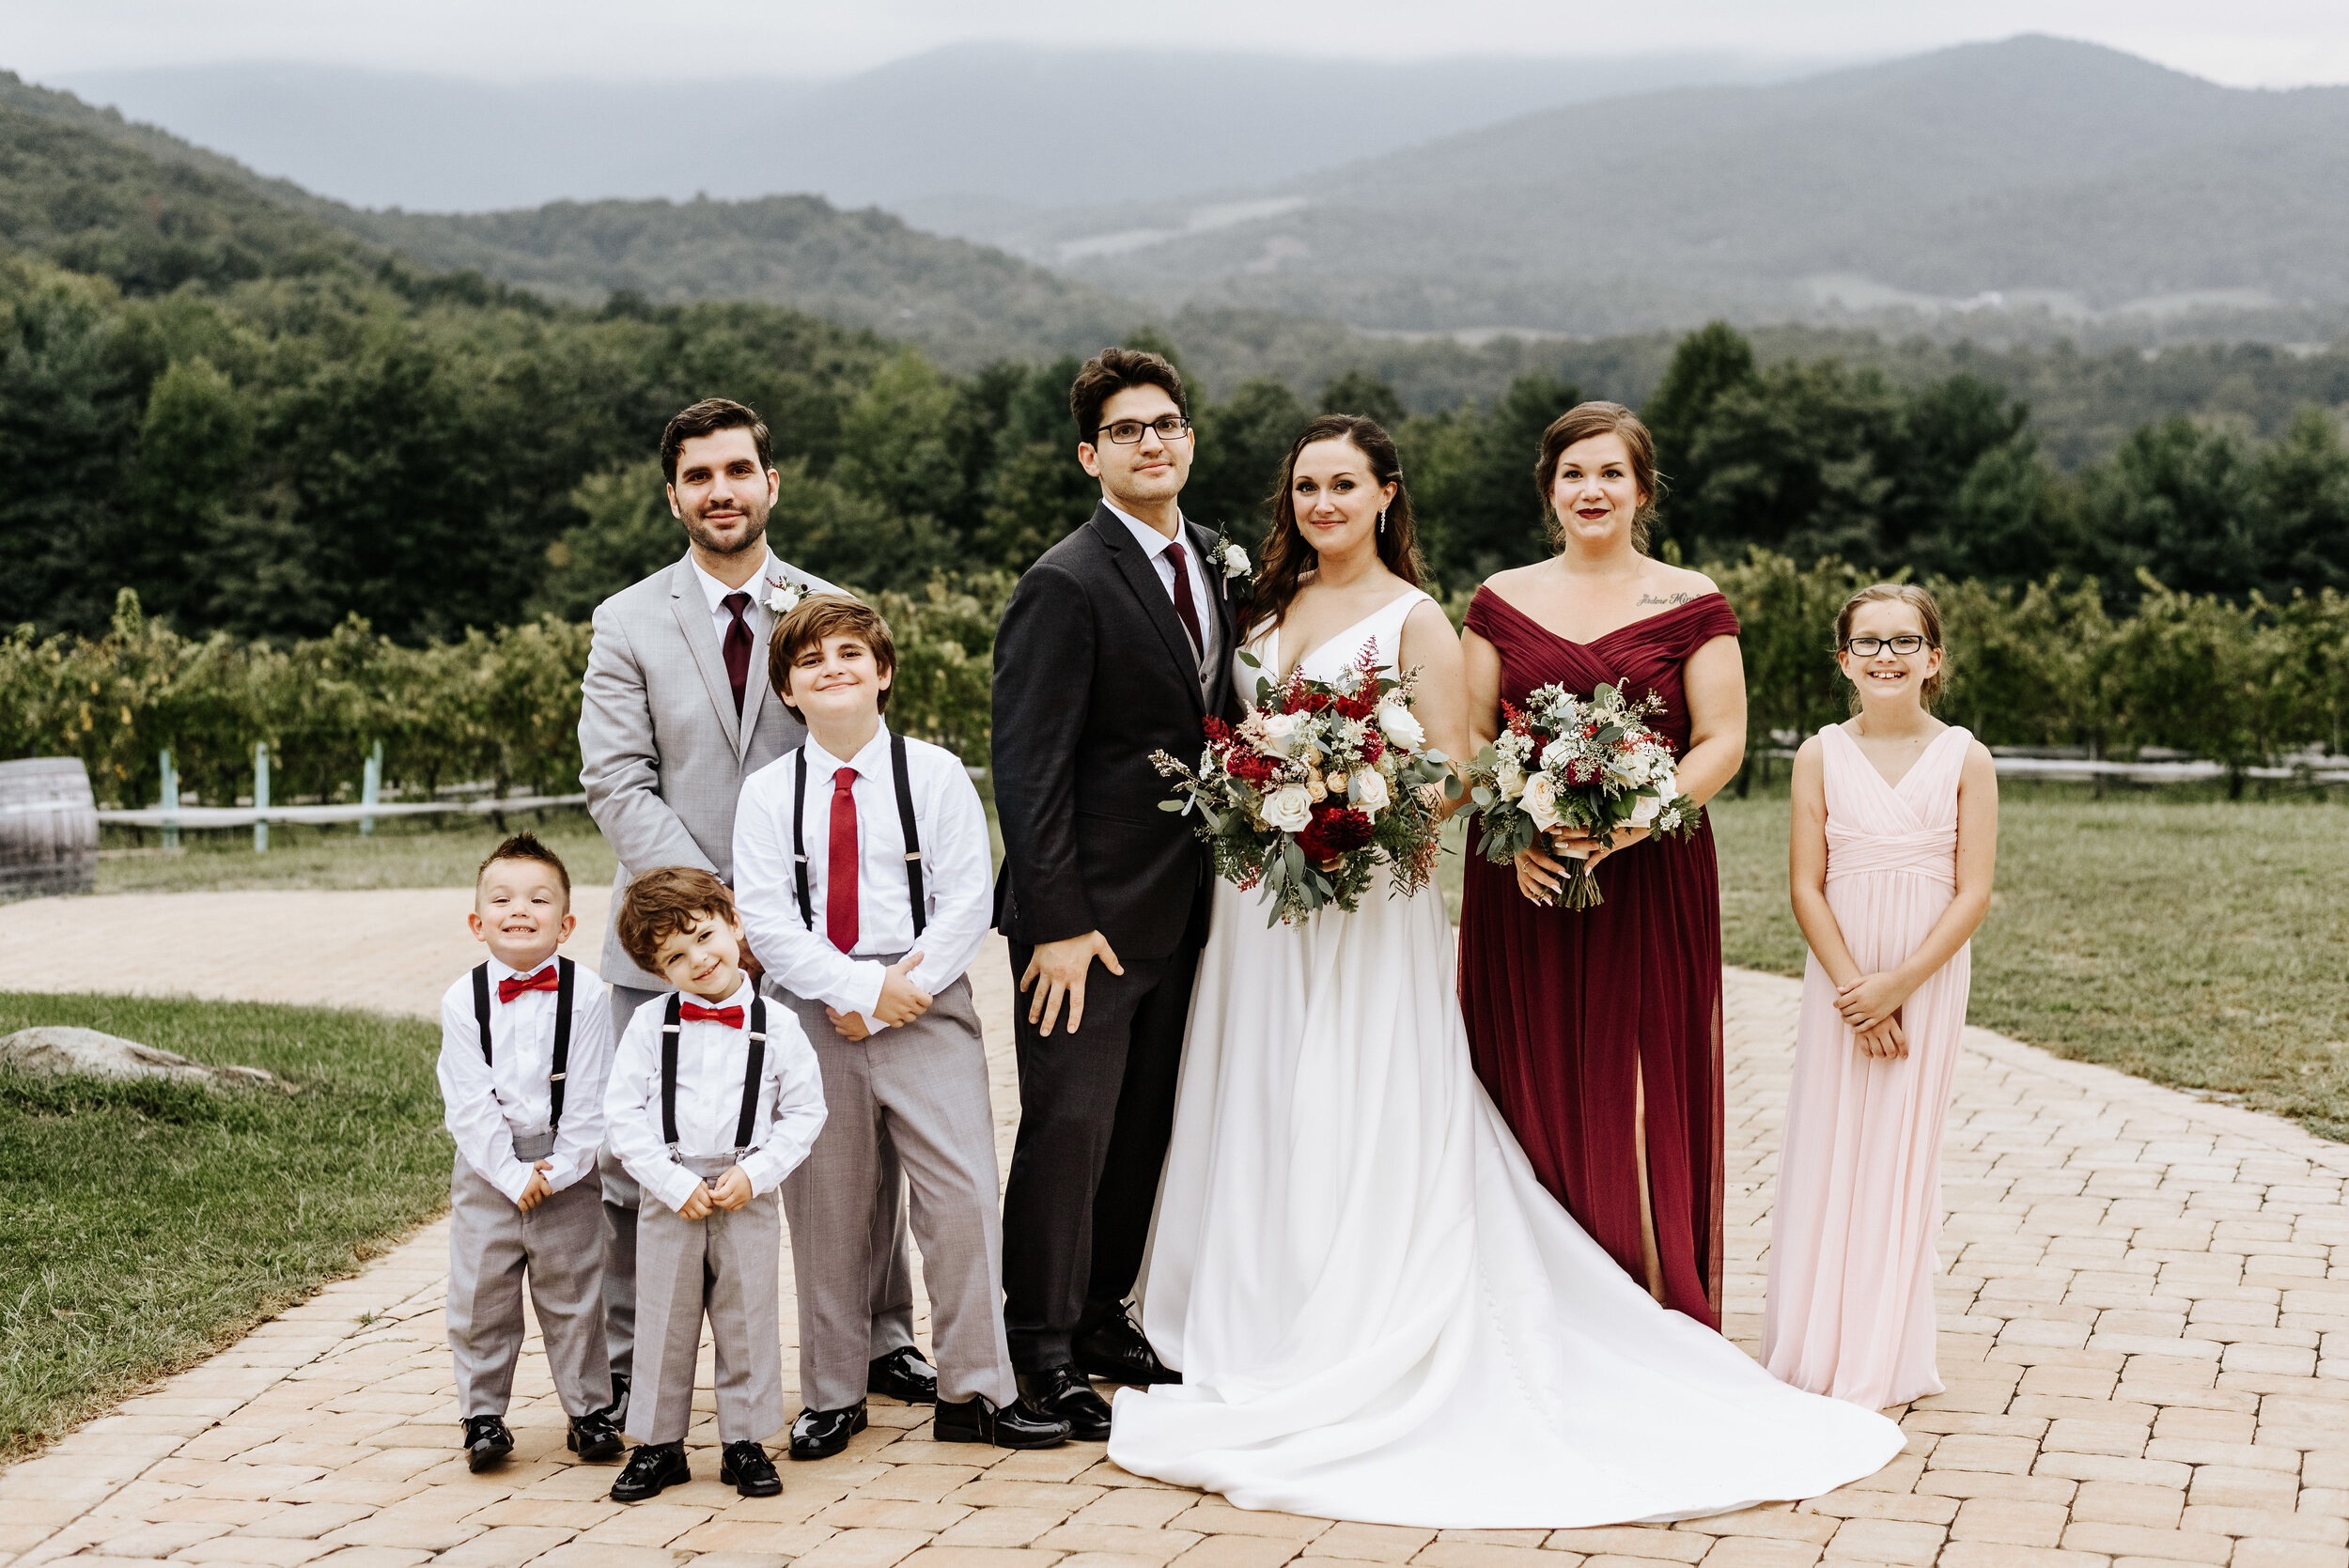 Allison_Nolan_Moss_Vineyards_Wedding_Charlottesville_Virginia_Photography_by_V_54.jpg